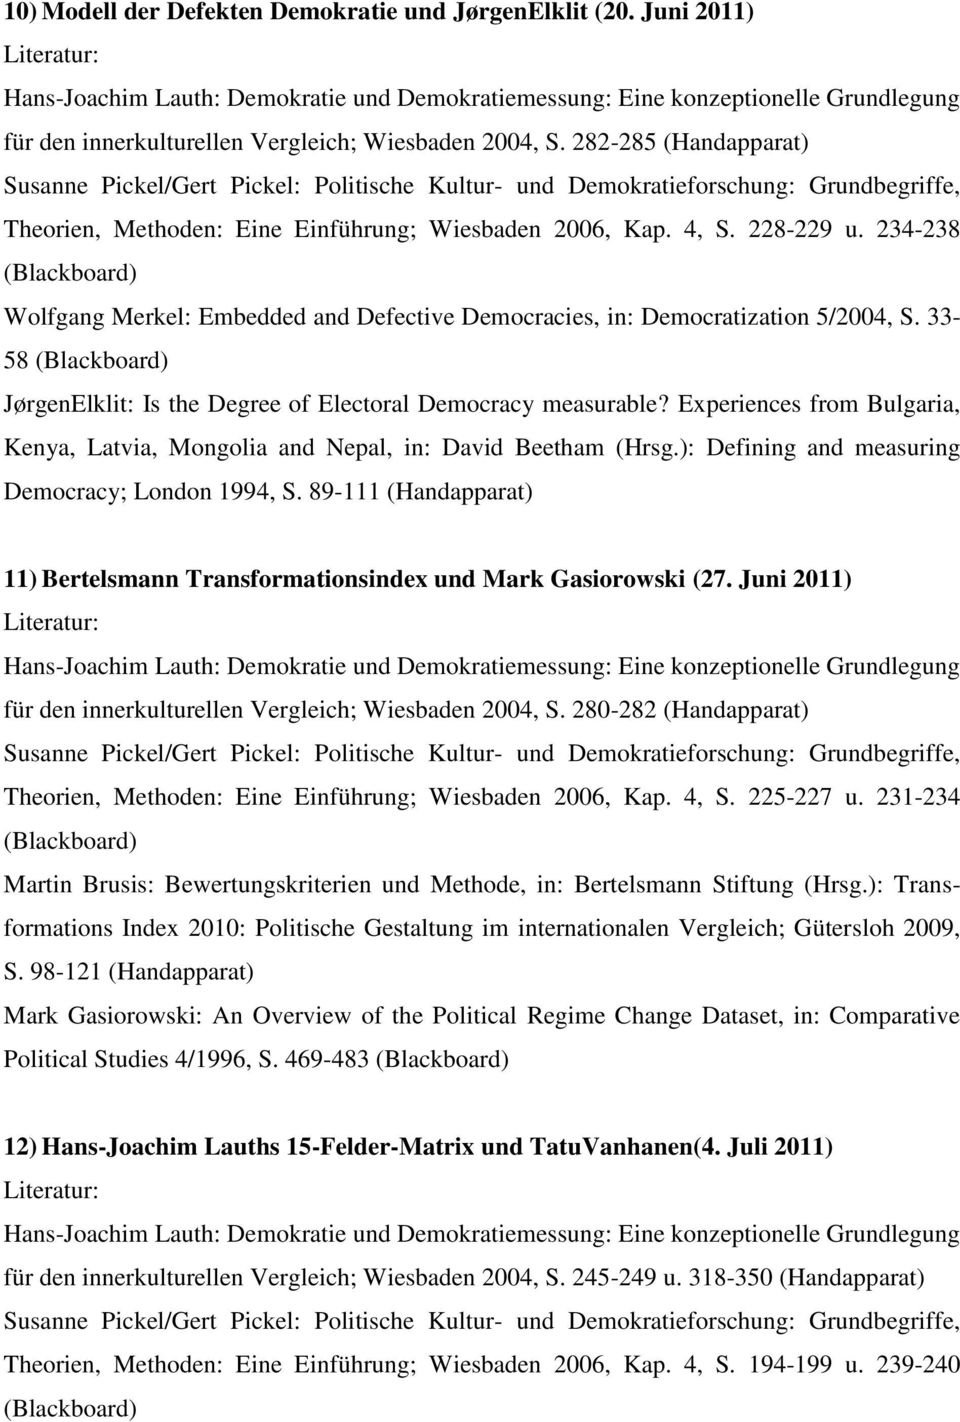 33-58 JørgenElklit: Is the Degree of Electoral Democracy measurable? Experiences from Bulgaria, Kenya, Latvia, Mongolia and Nepal, in: David Beetham (Hrsg.